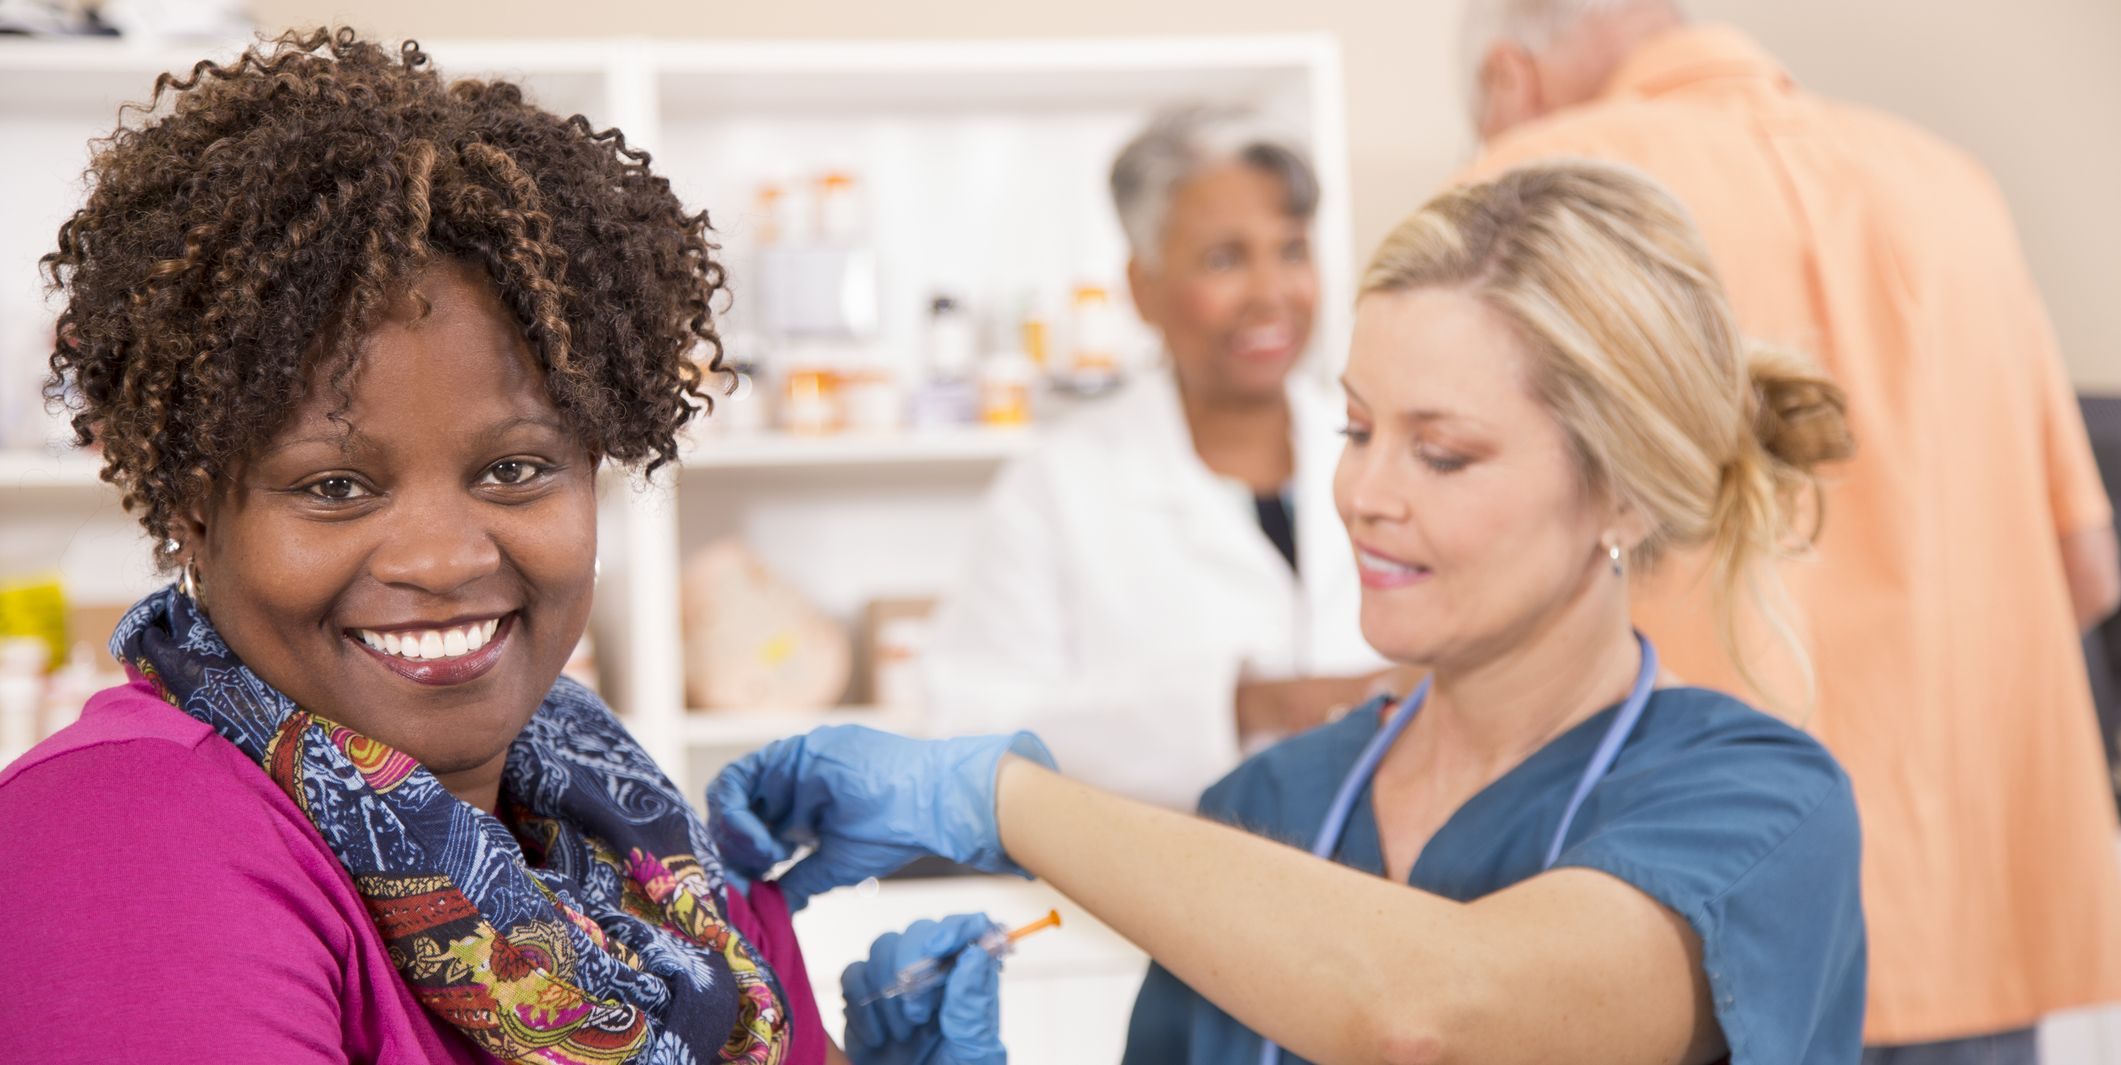 Nurse gives flu shot vaccine to patient at pharmacy.